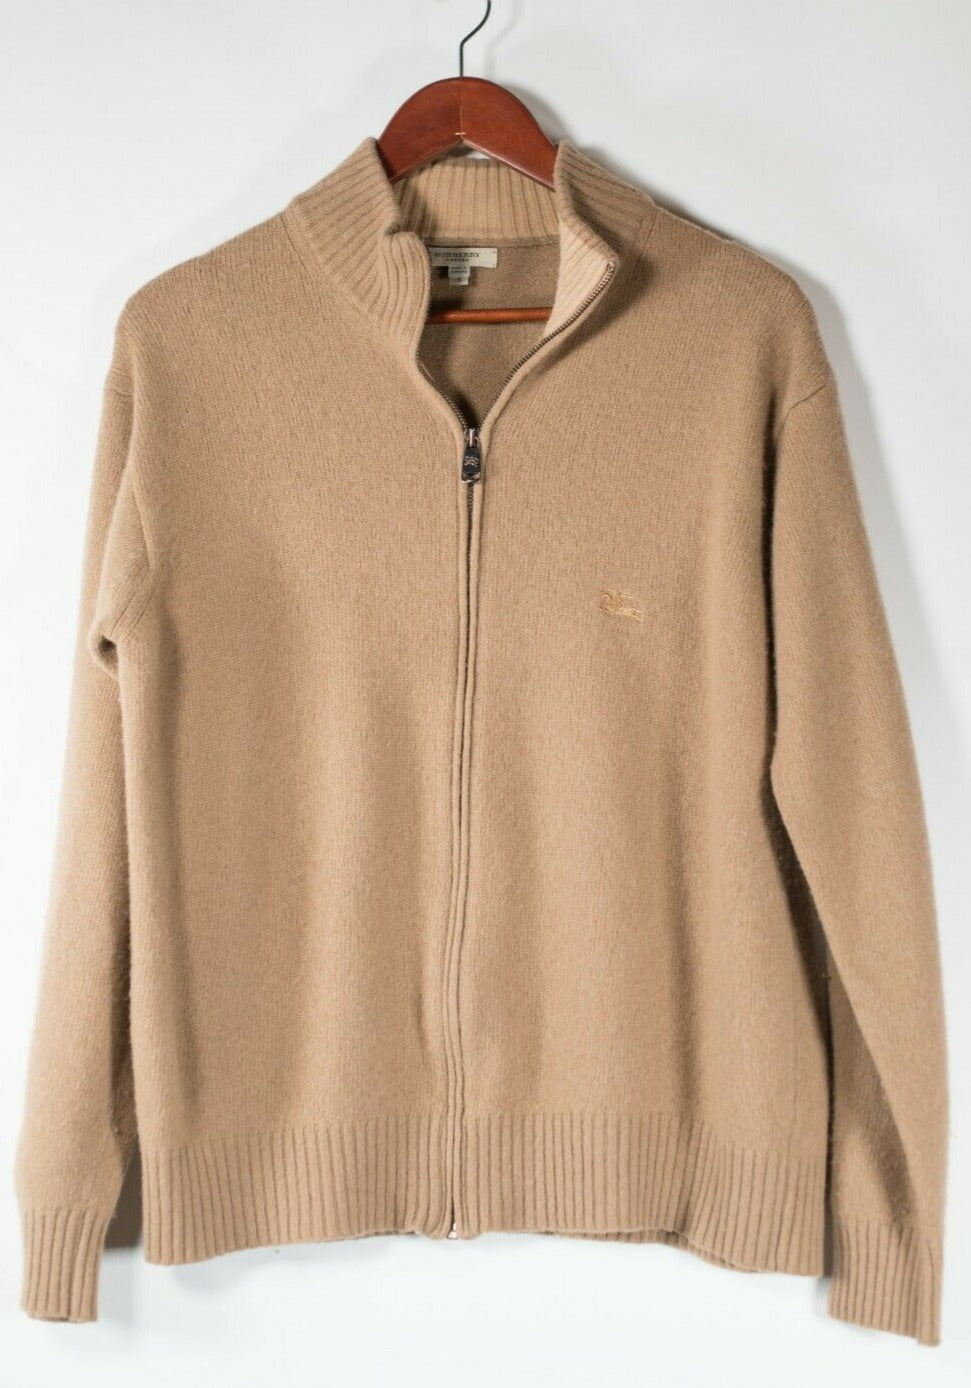 Burberry London Men's Size Small Beige Brown Cardigan Sweater Zip Up Wool Shirt